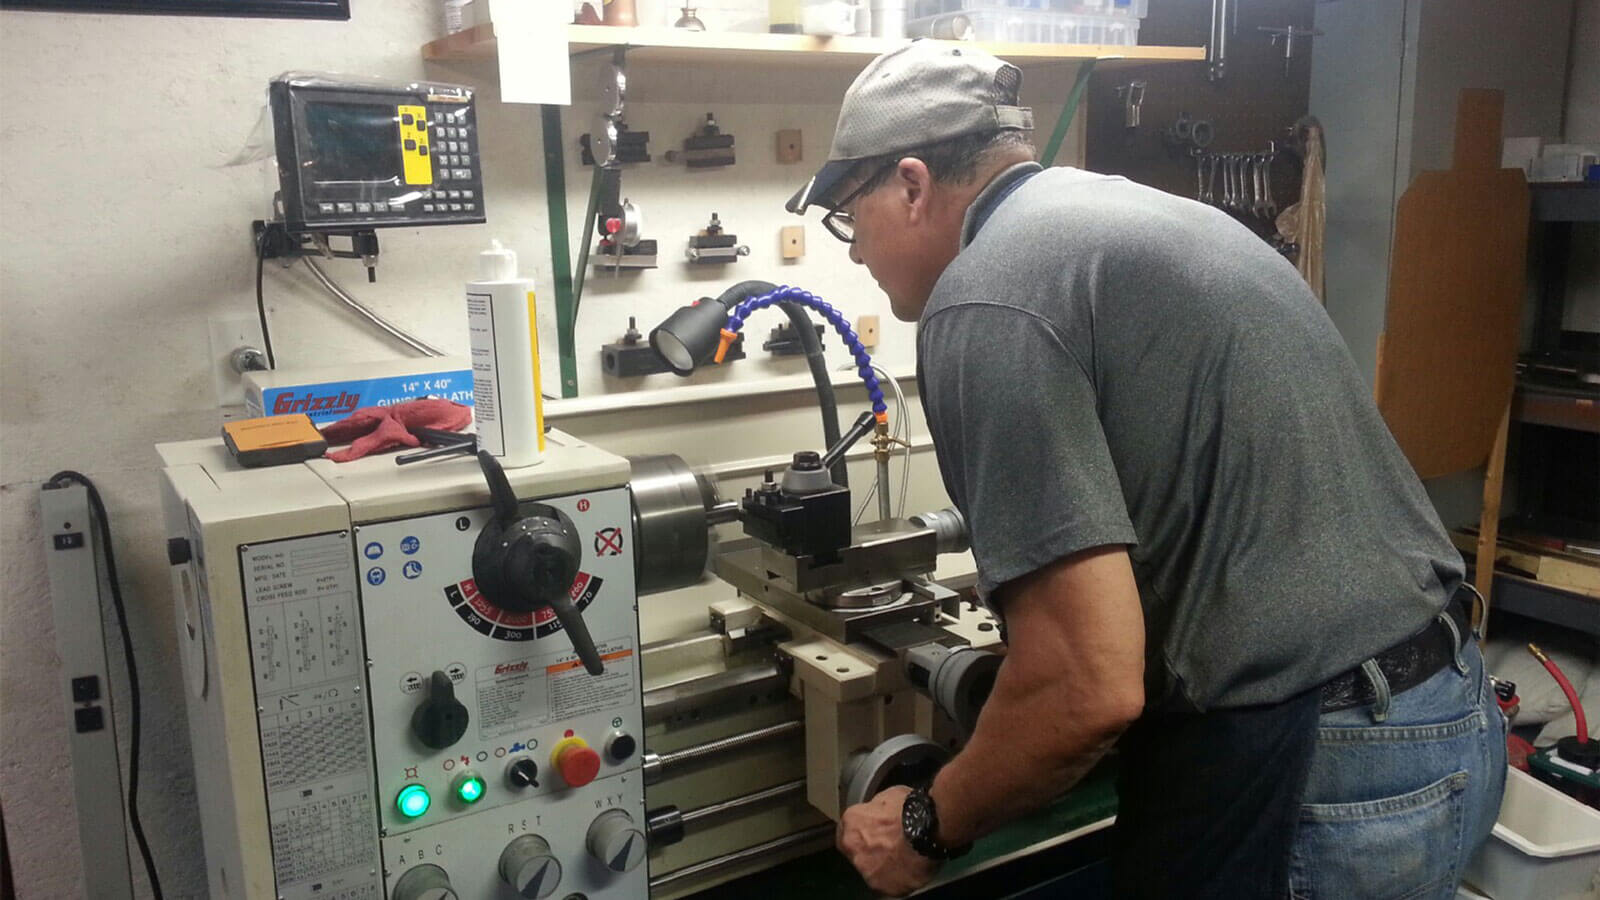 Skypilot Genseal working on his lathe